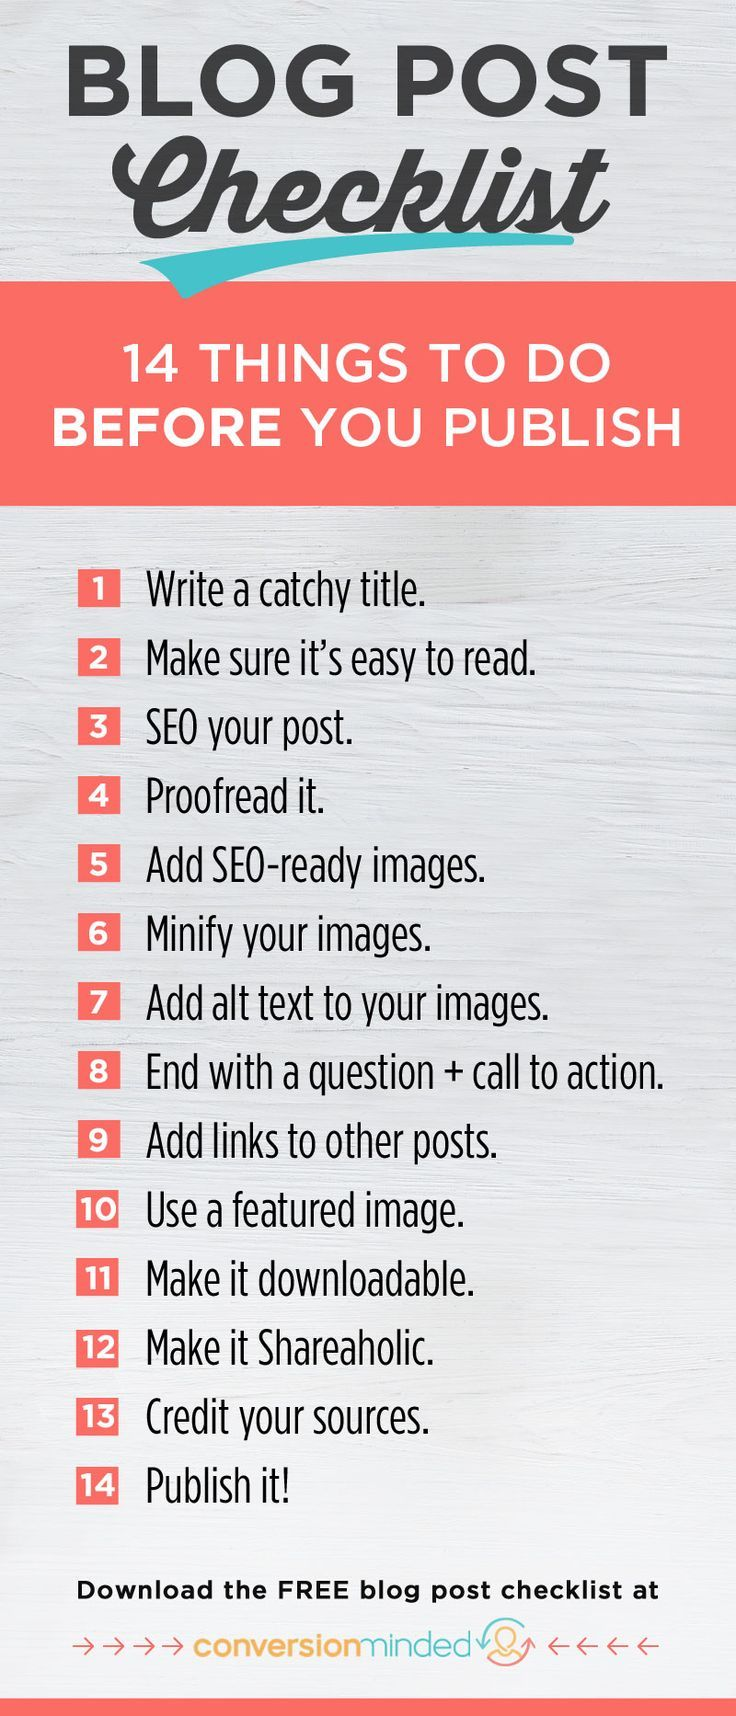 This blog checklist includes 7 essential things you should do as soon as your posts go live to get traffic to them. blog post checklist printable, before publishing blog, blog to do list #blogging #checklist